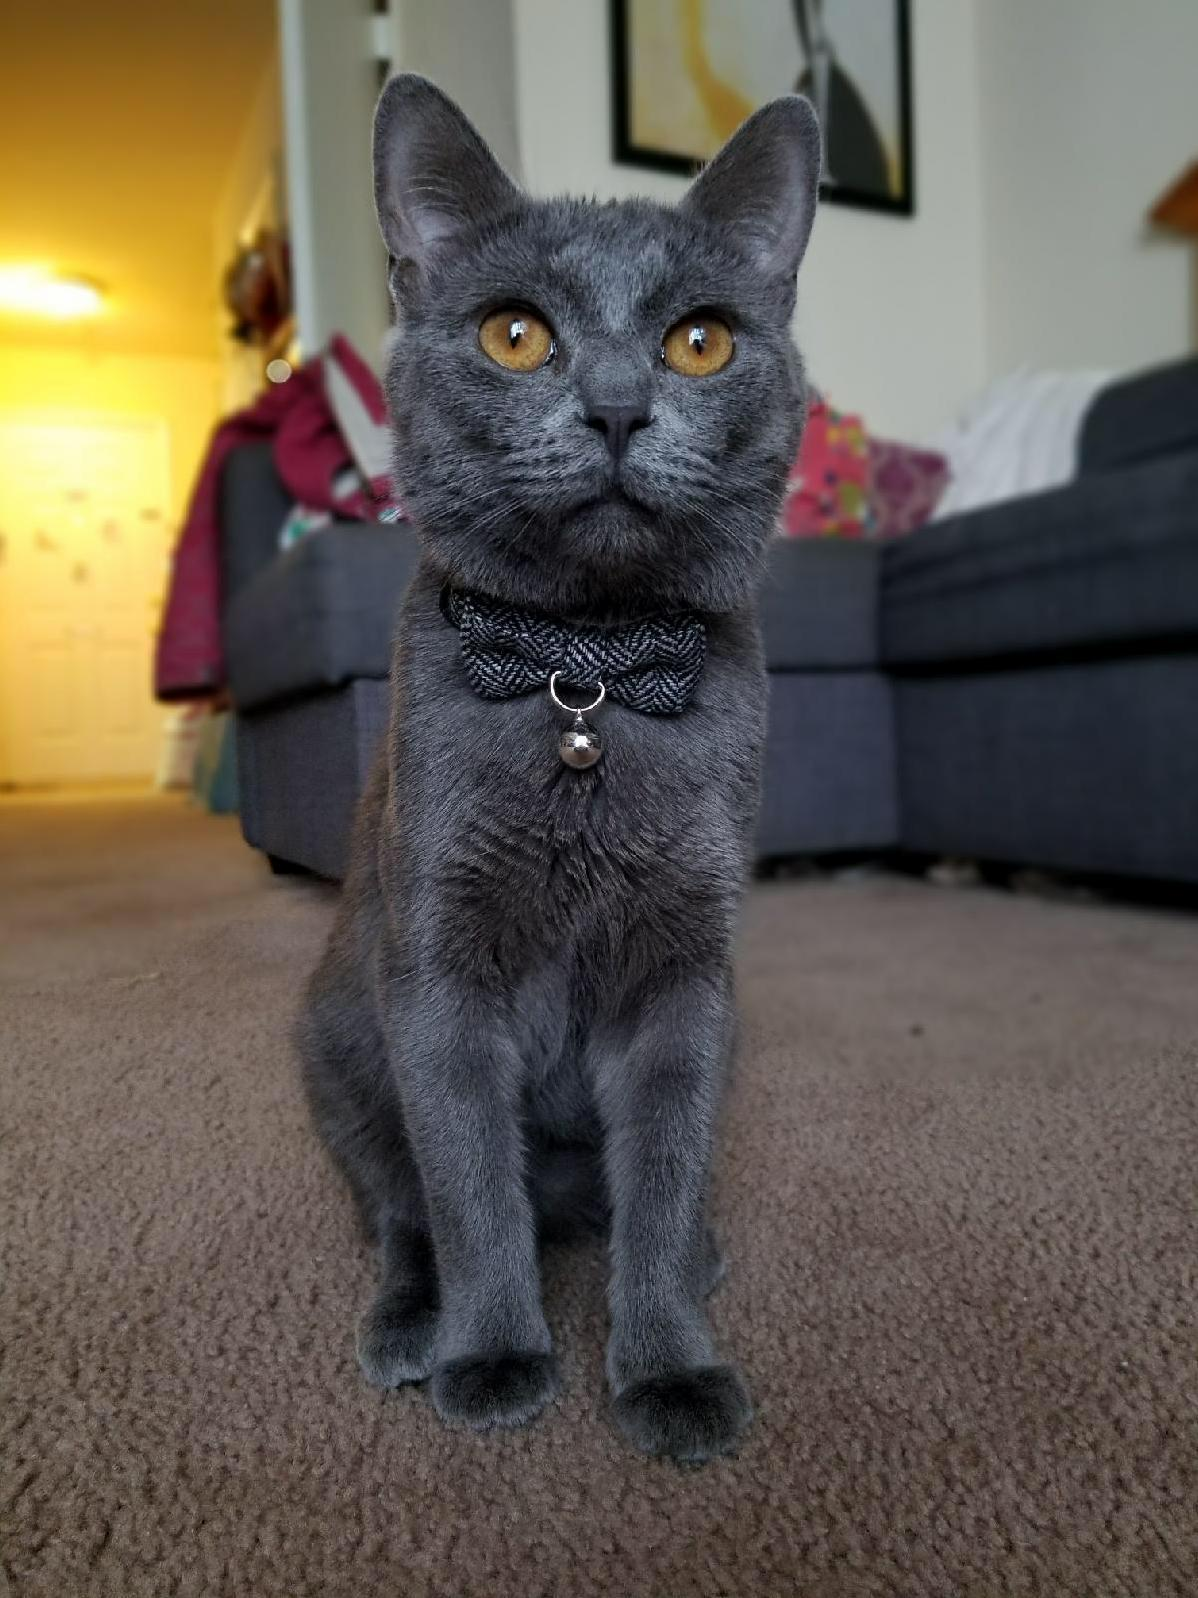 My sisters cat is a handsome dude.